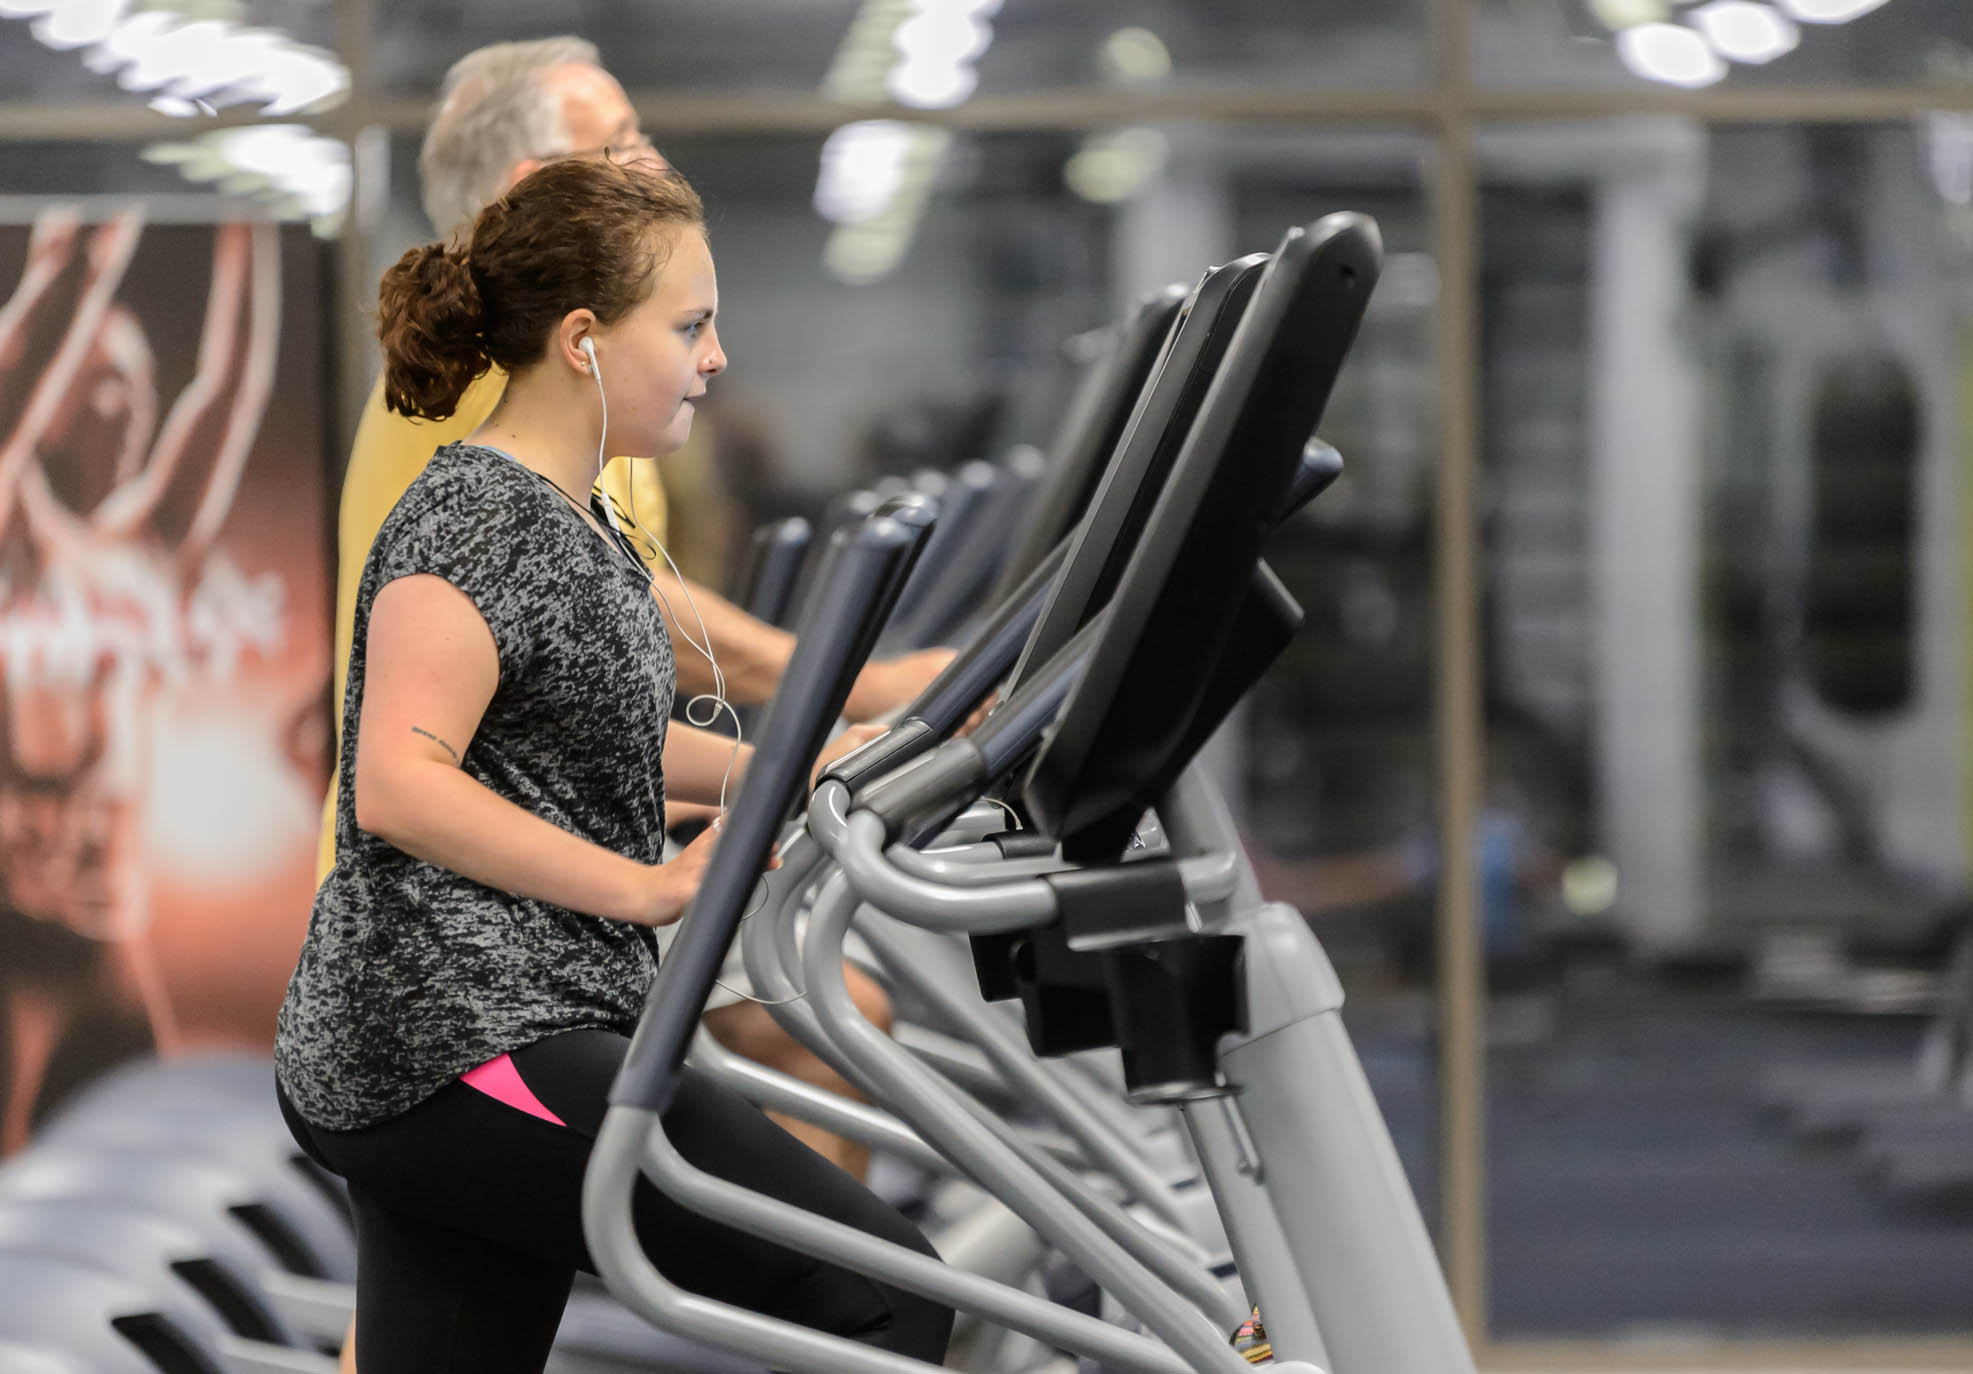 A young woman watches a screen as she used a crossfit machine in a gym